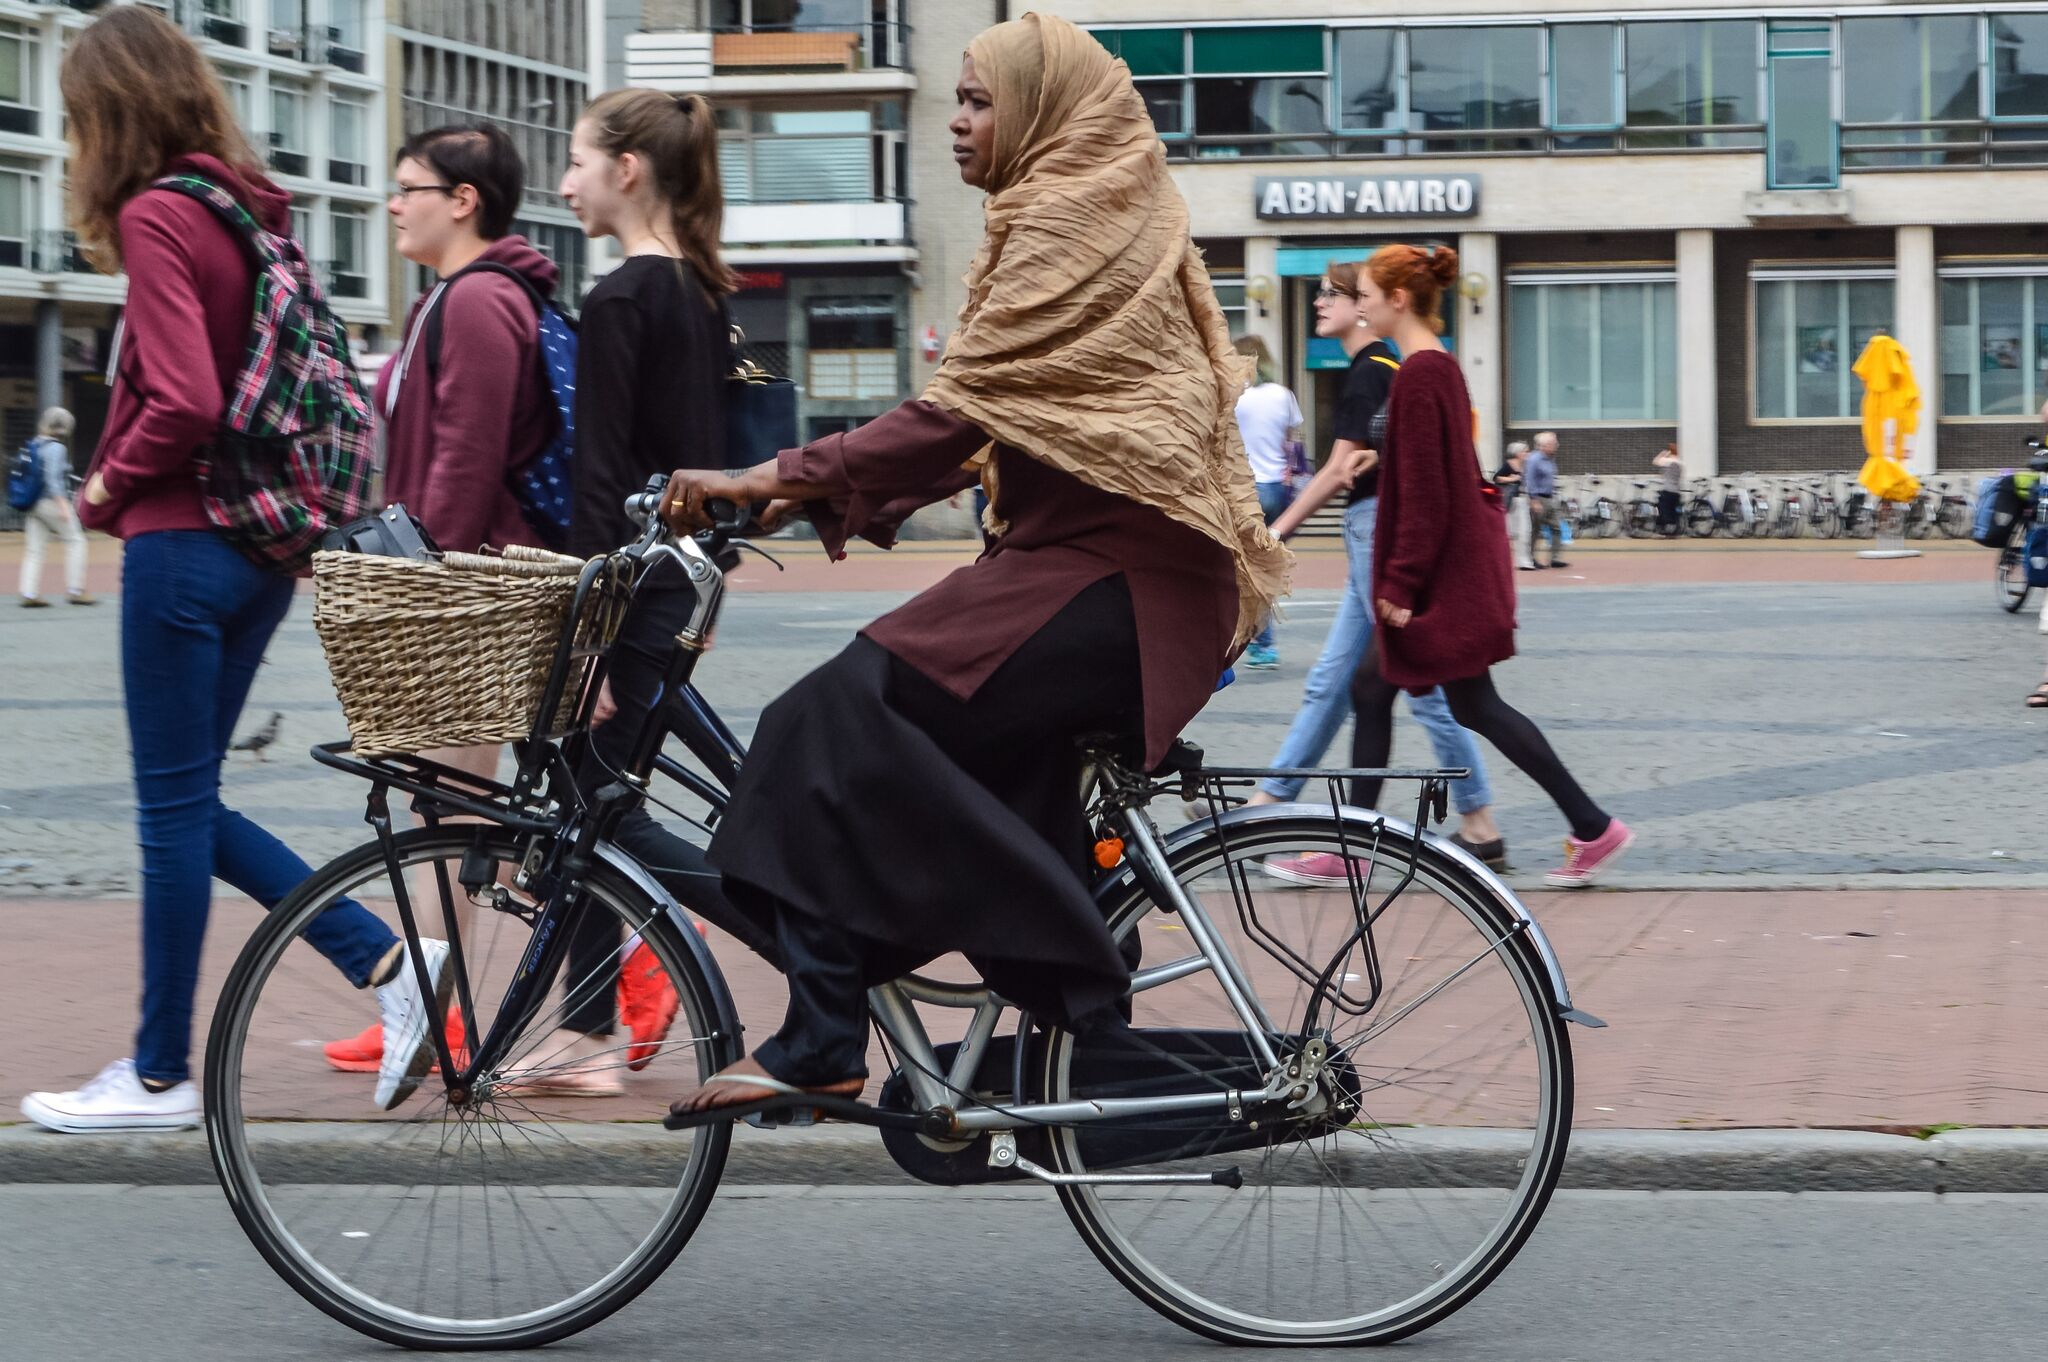 A woman using a bike as transport in the Netherlands. (Courtesy of Chris and Melissa Bruntlett)